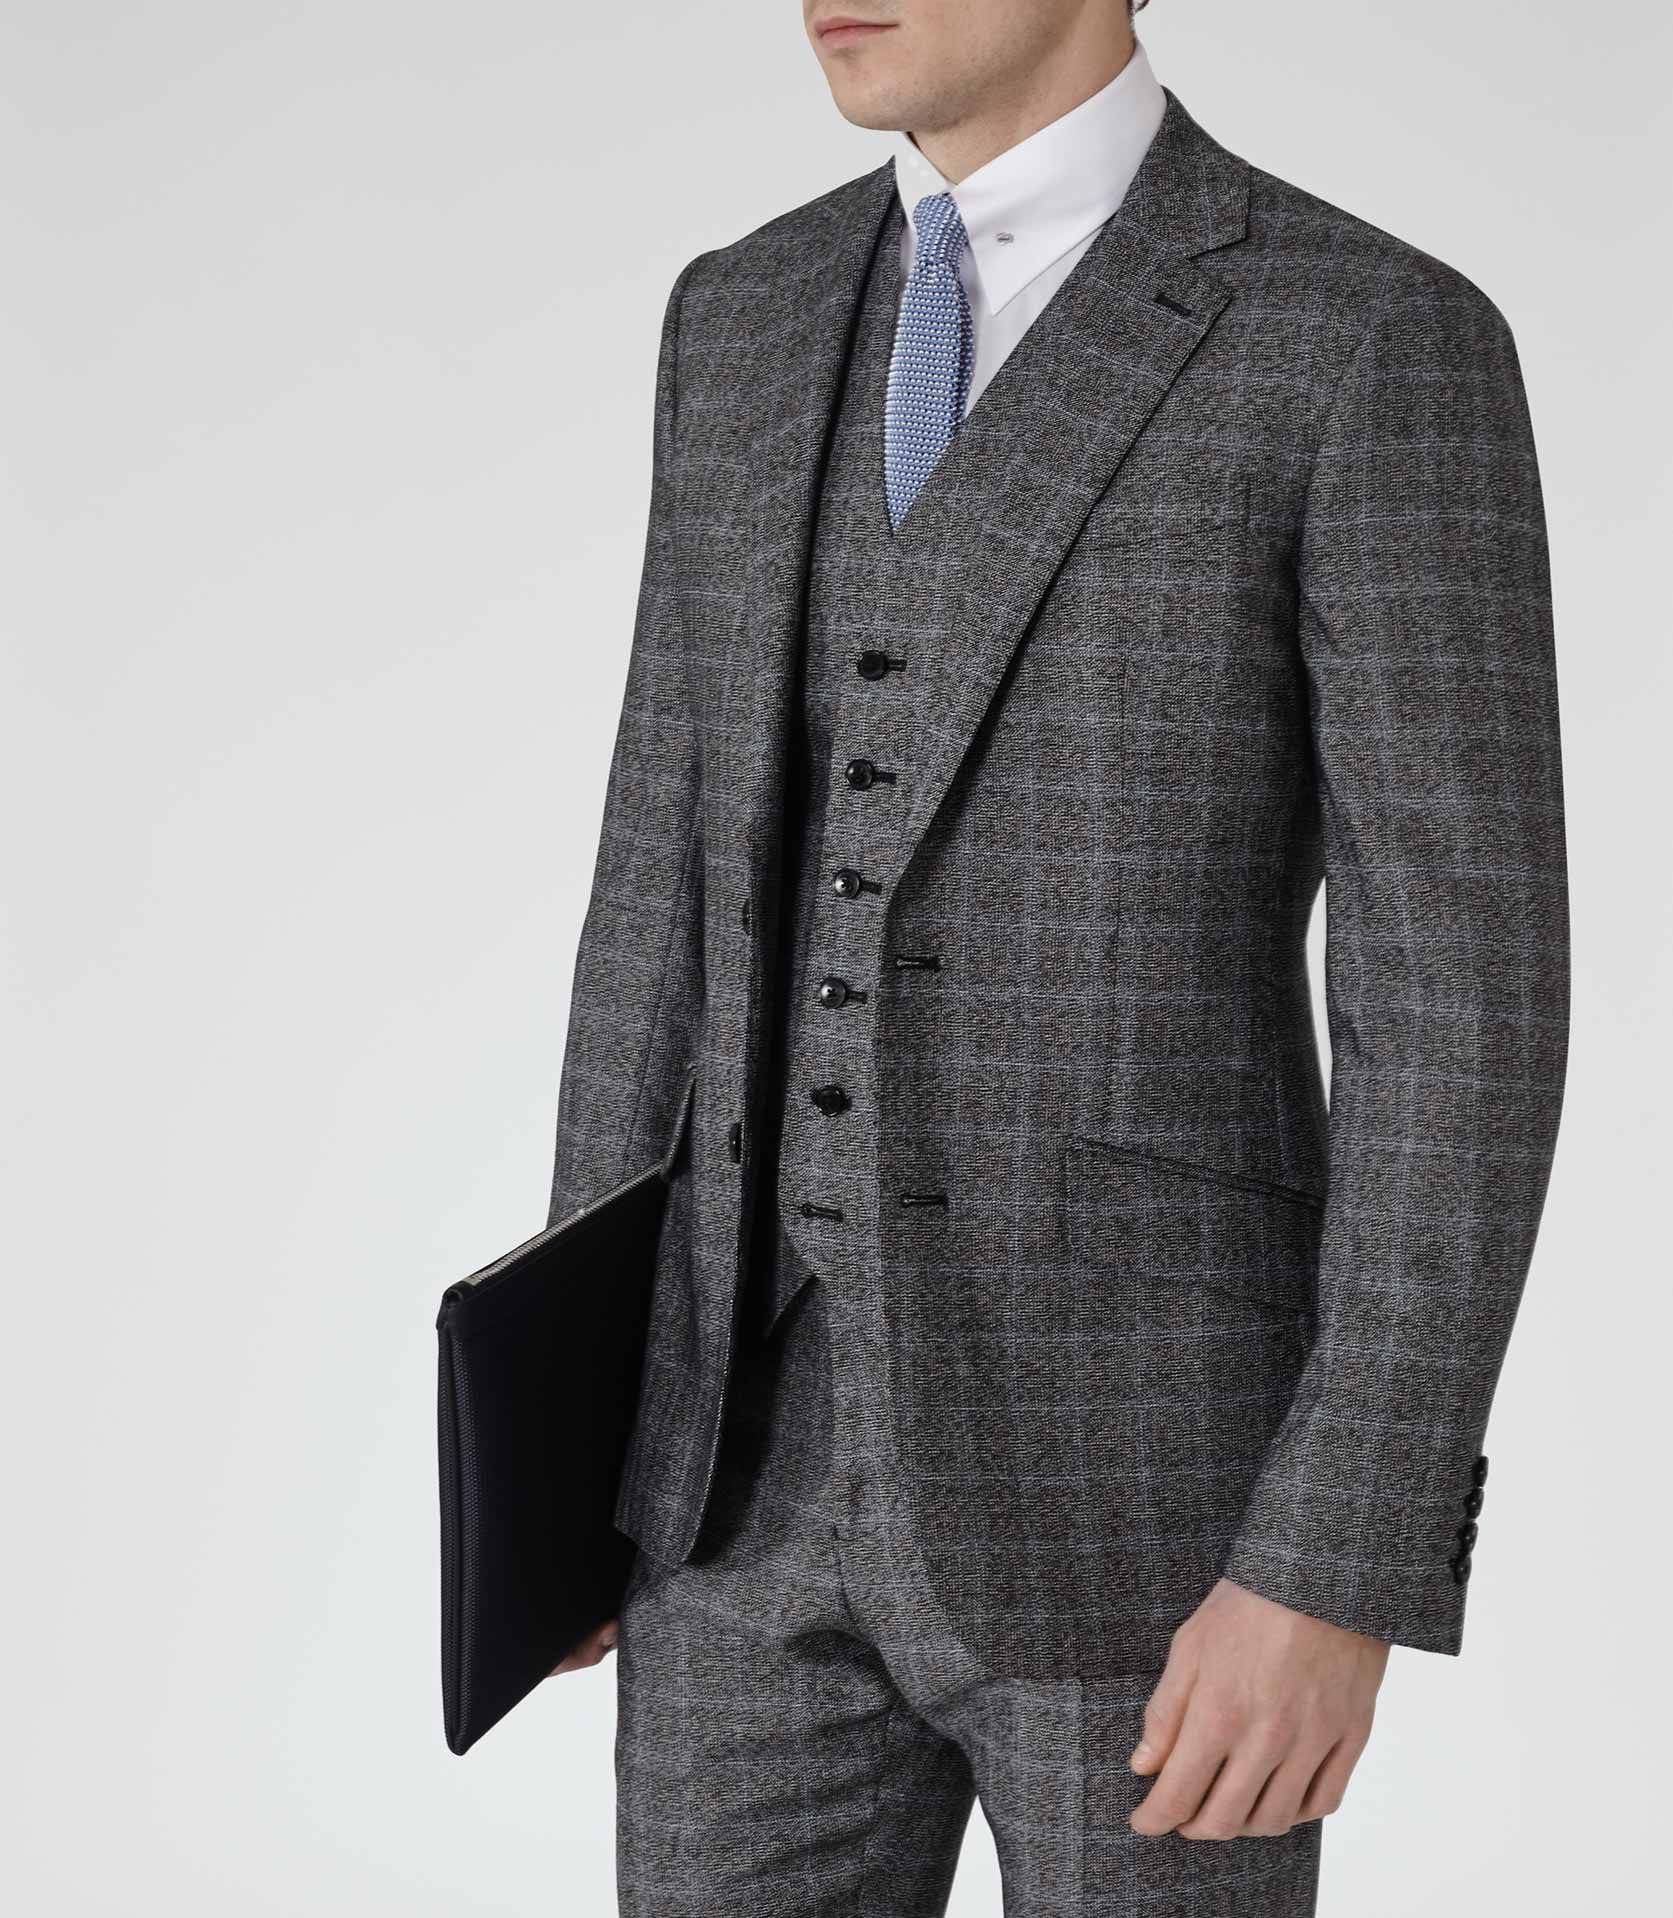 Ashby - Accessories | Us, Grey and Suits